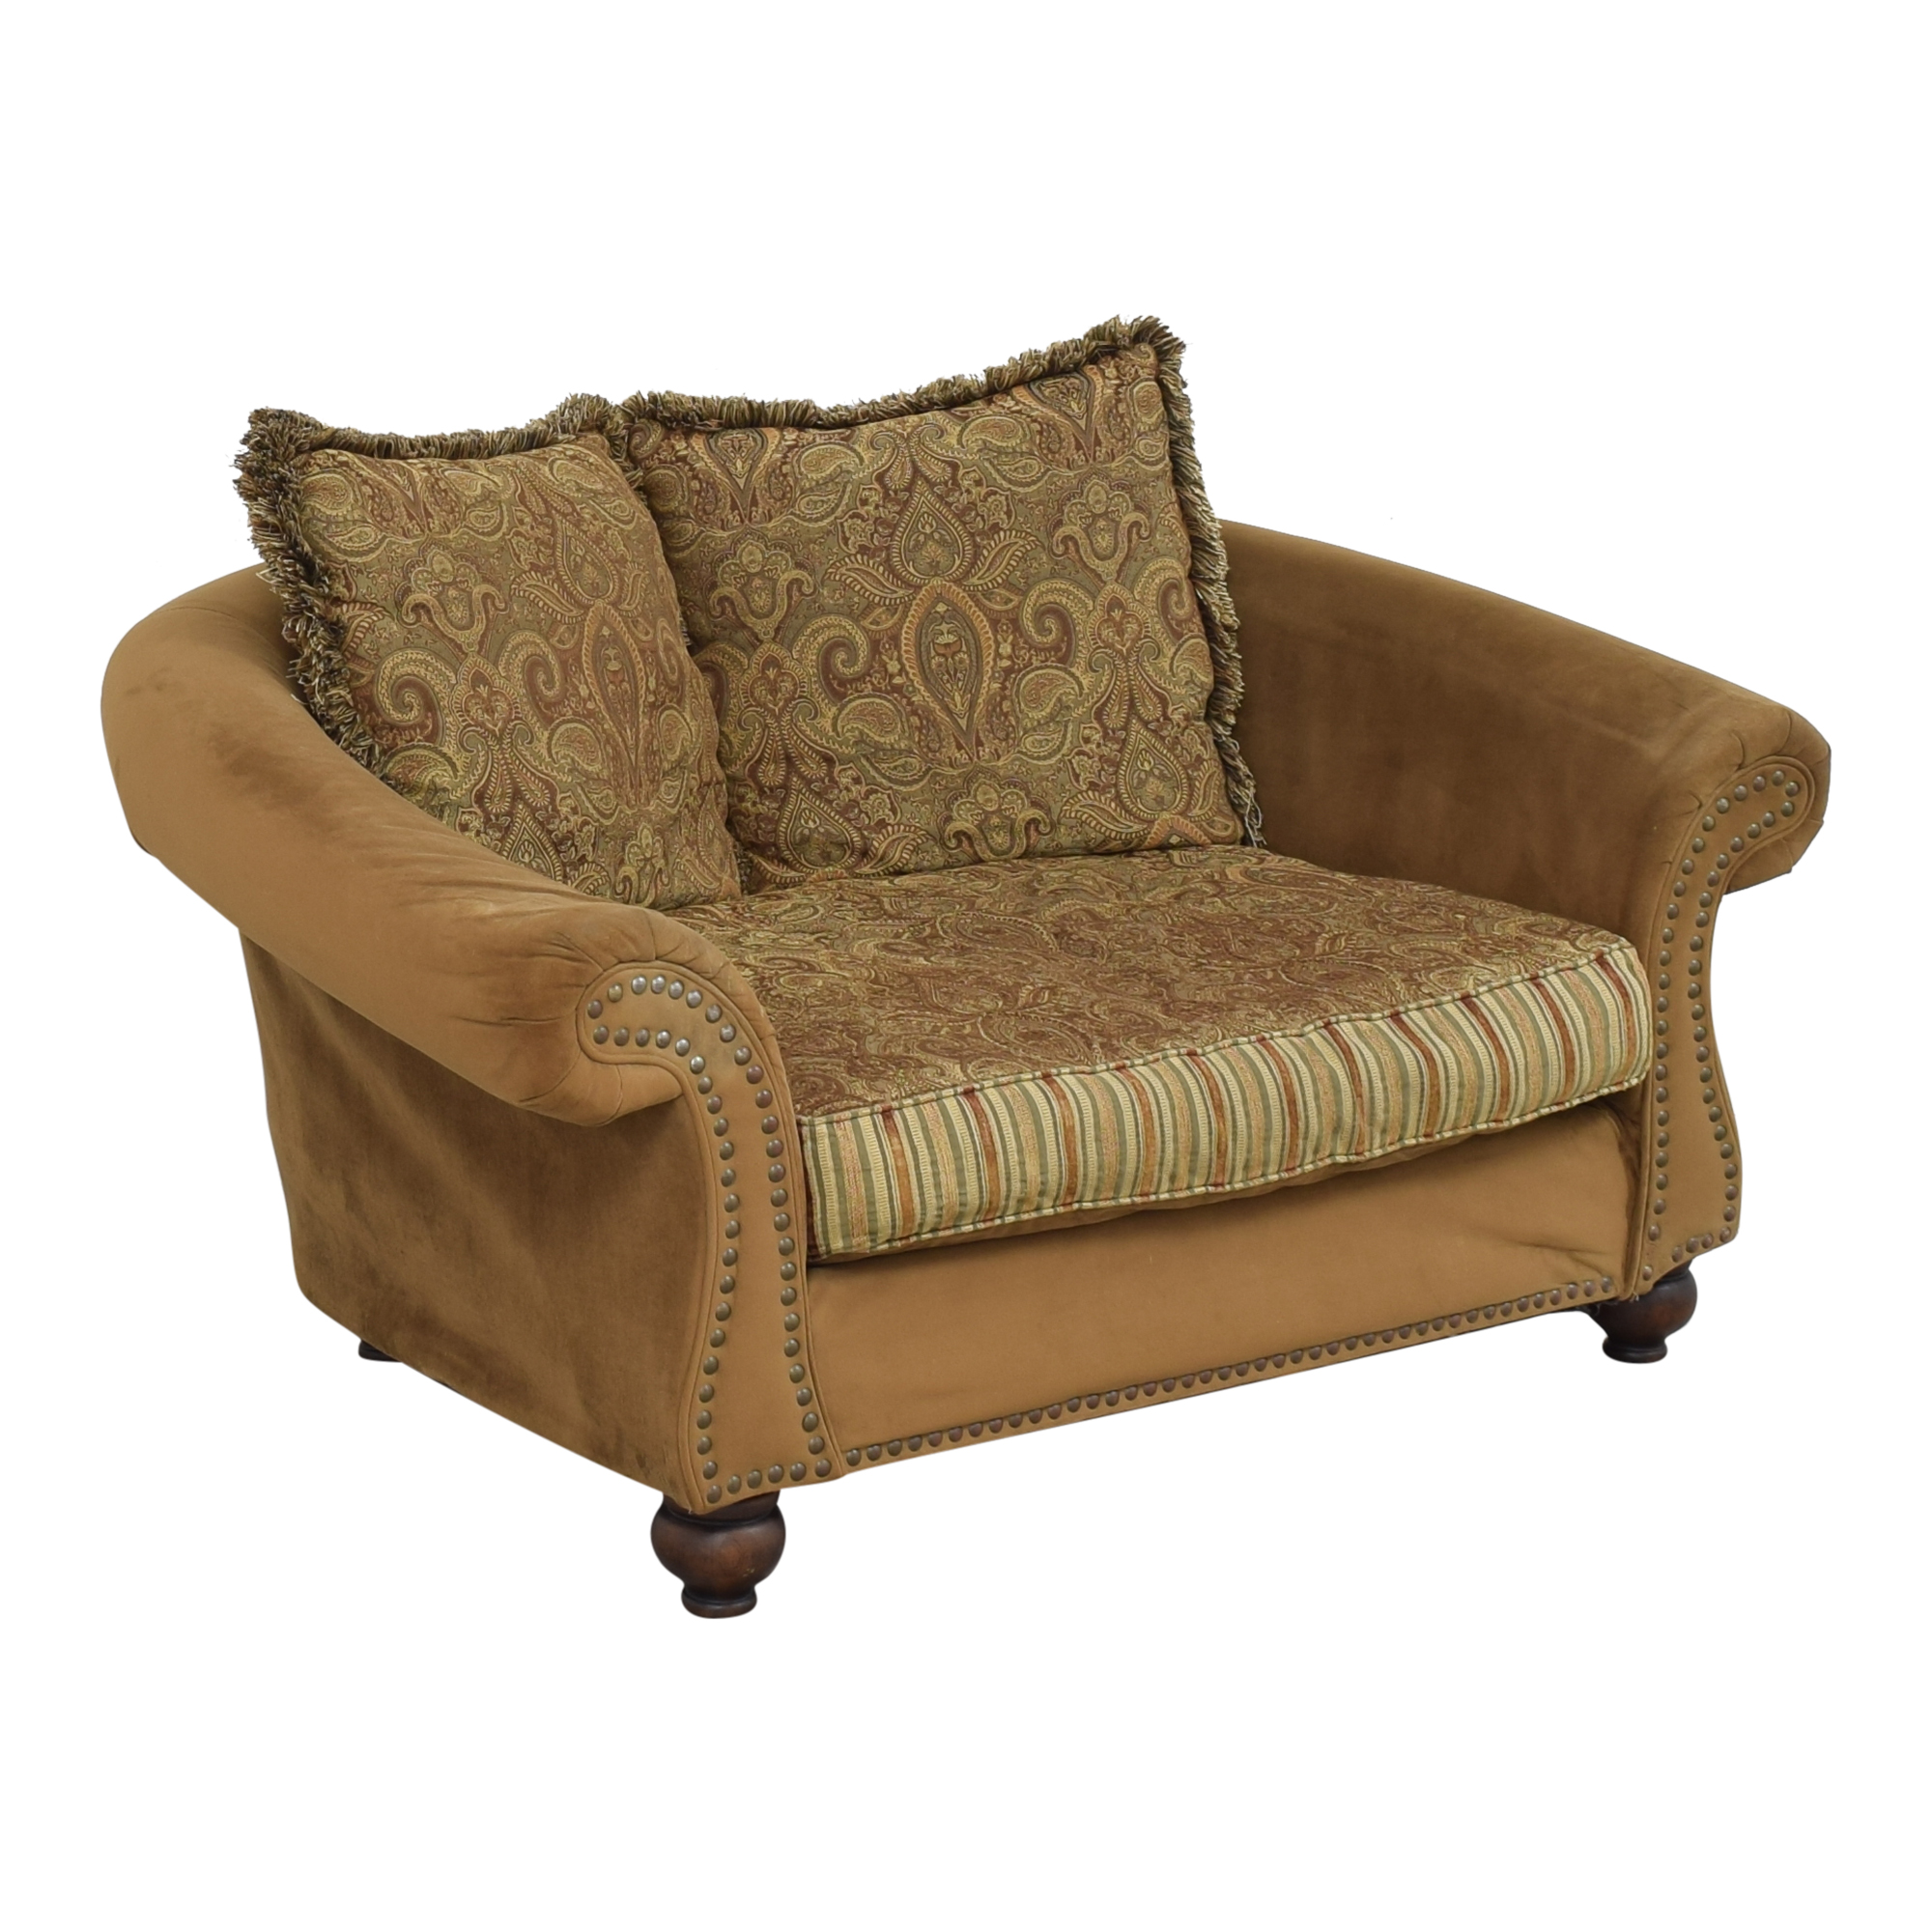 Cindy Crawford Home Cindy Crawford Home Nailhead Loveseat second hand